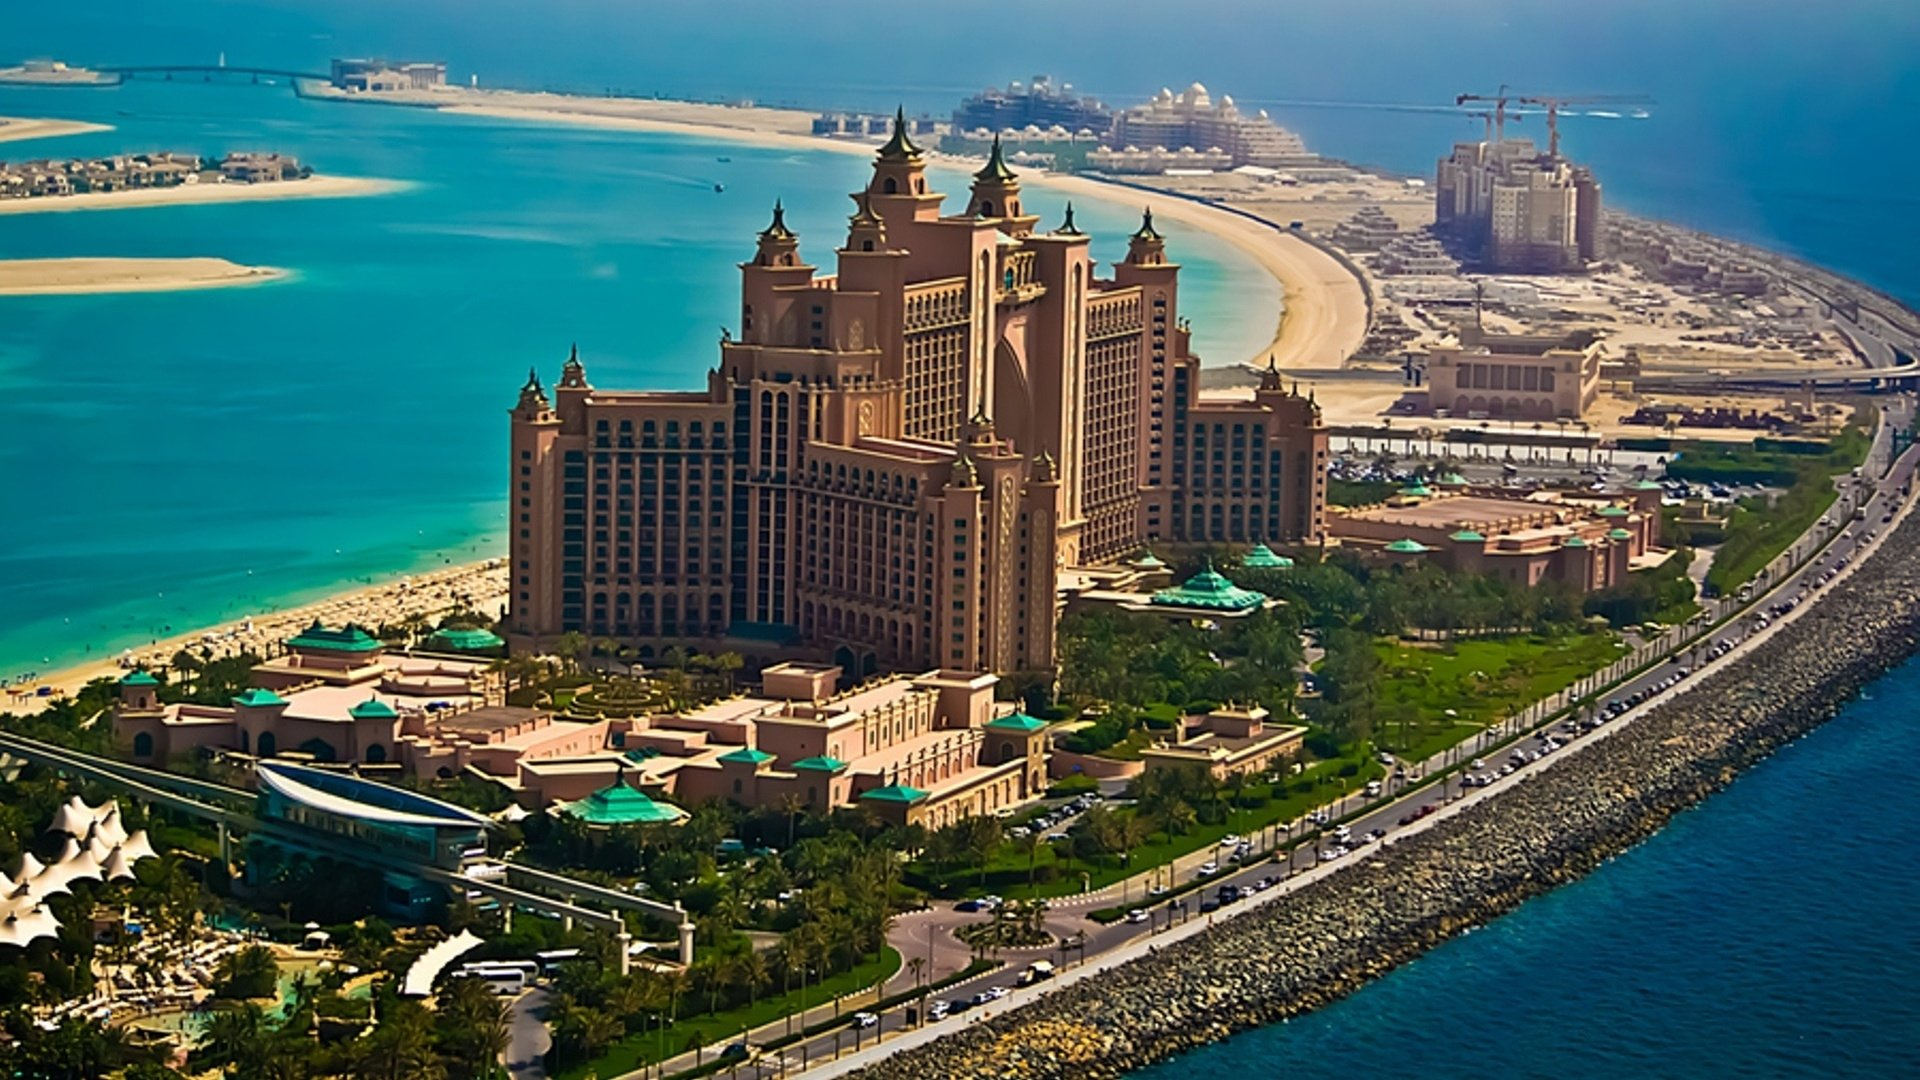 atlantis the palm dubai wallpapers driverlayer search engine